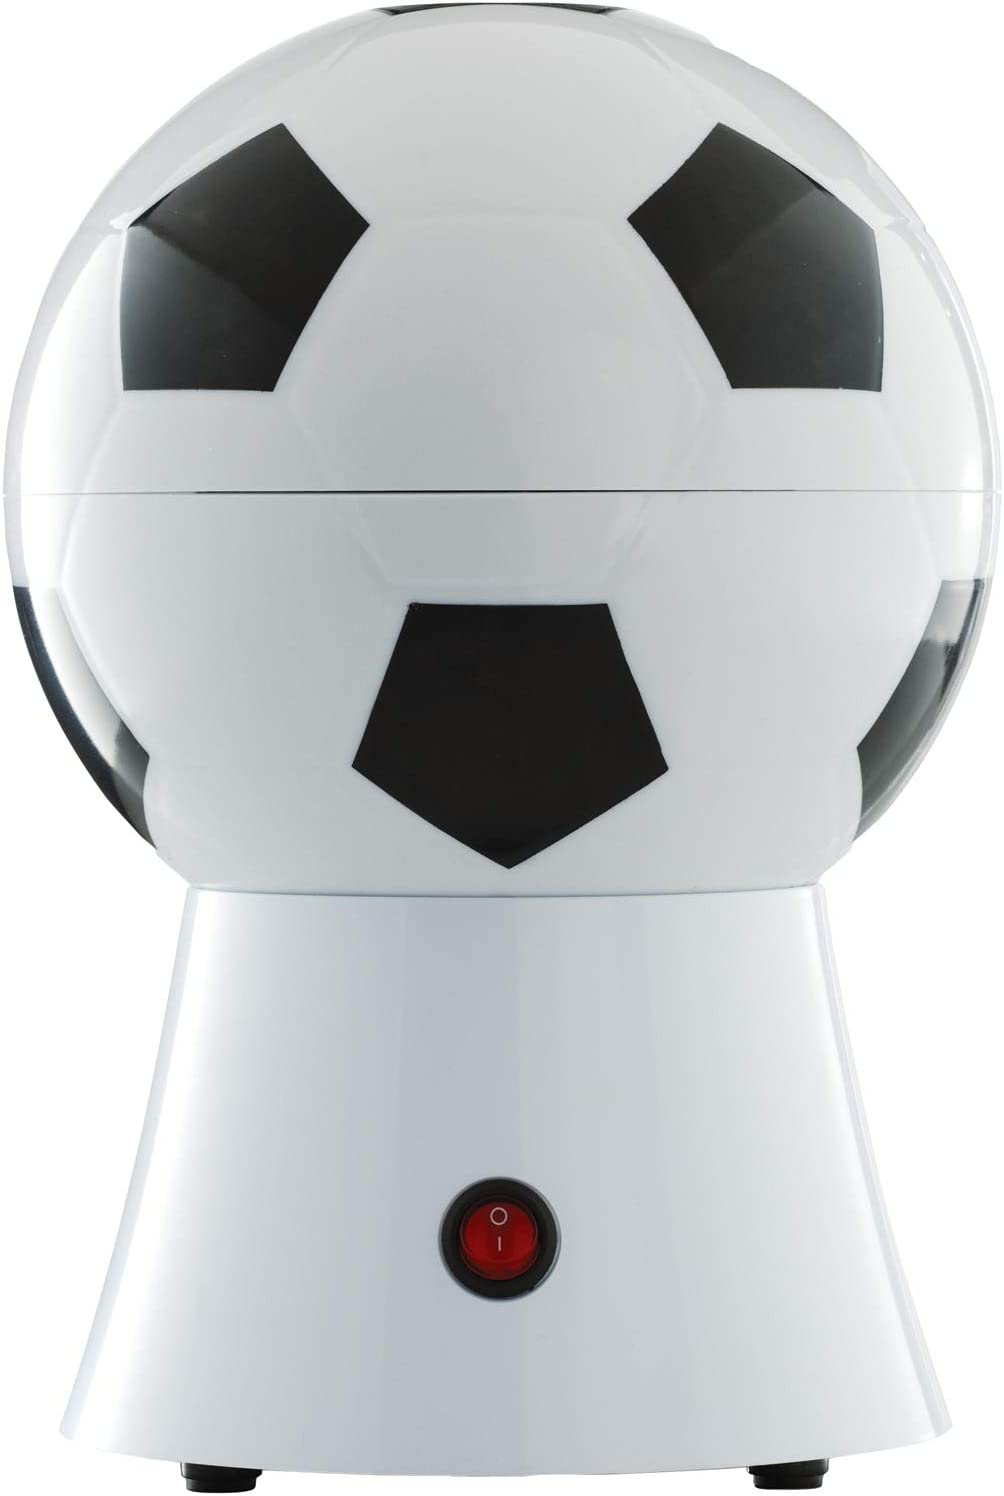 Brentwood PC-482 Soccer Ball Hot Air Popcorn Maker, 8-Cup, White/Black